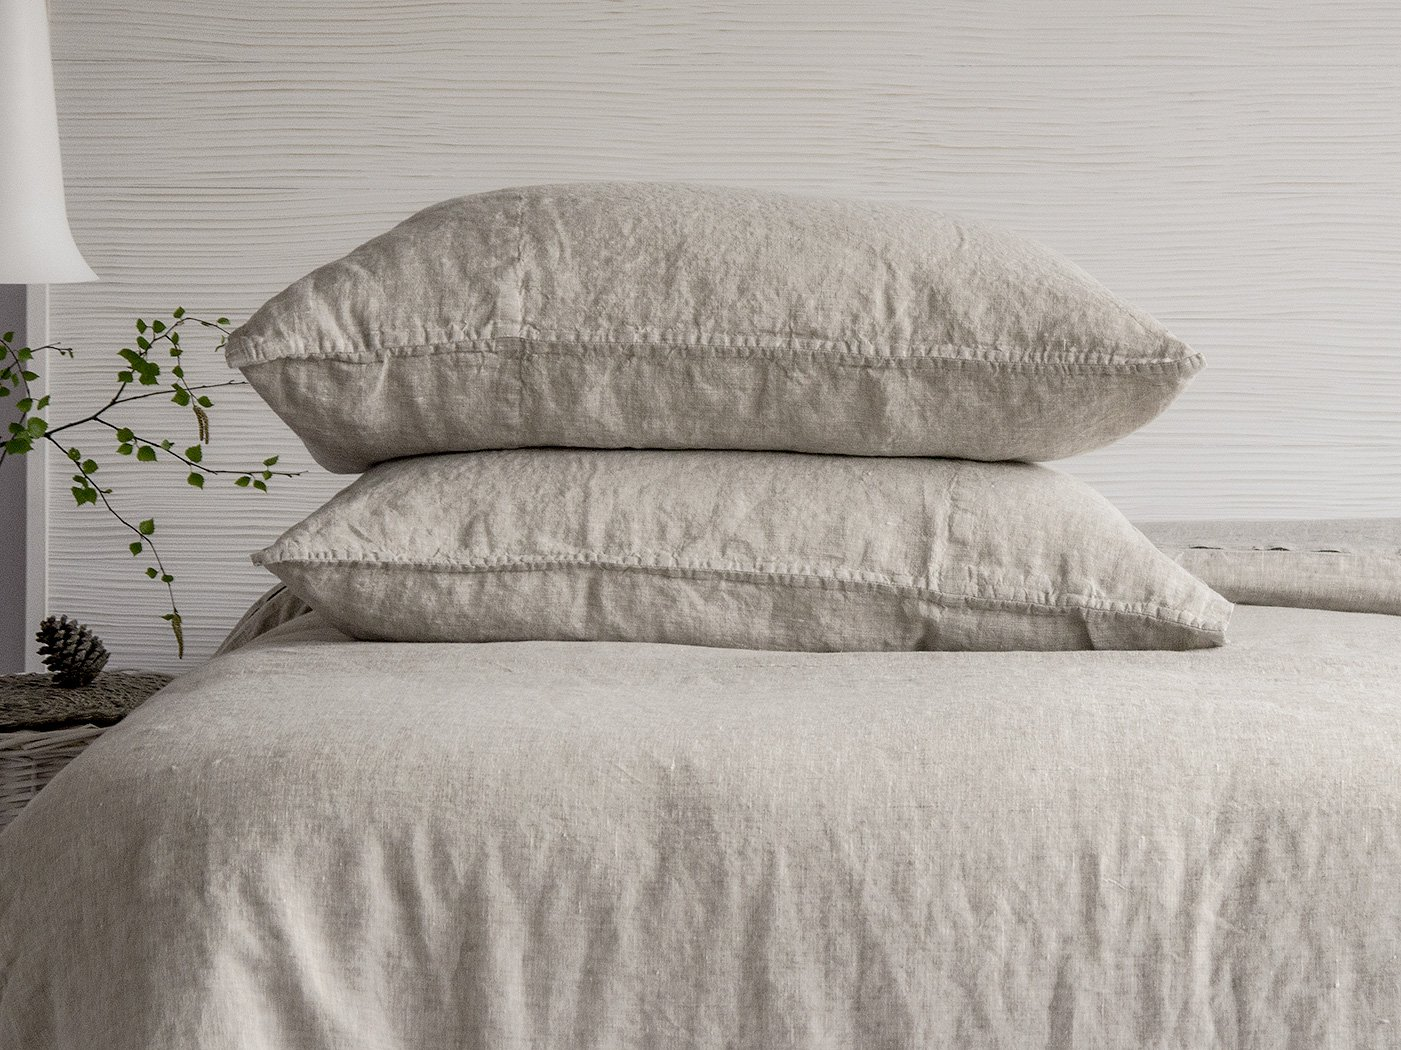 BEALINEN Linen Pillowcases Shams 2 pcs with Inside Pocket Closure Size EURO SQUARE 26''x26'' Natural Flax Gray Color Washed Softened European Linen